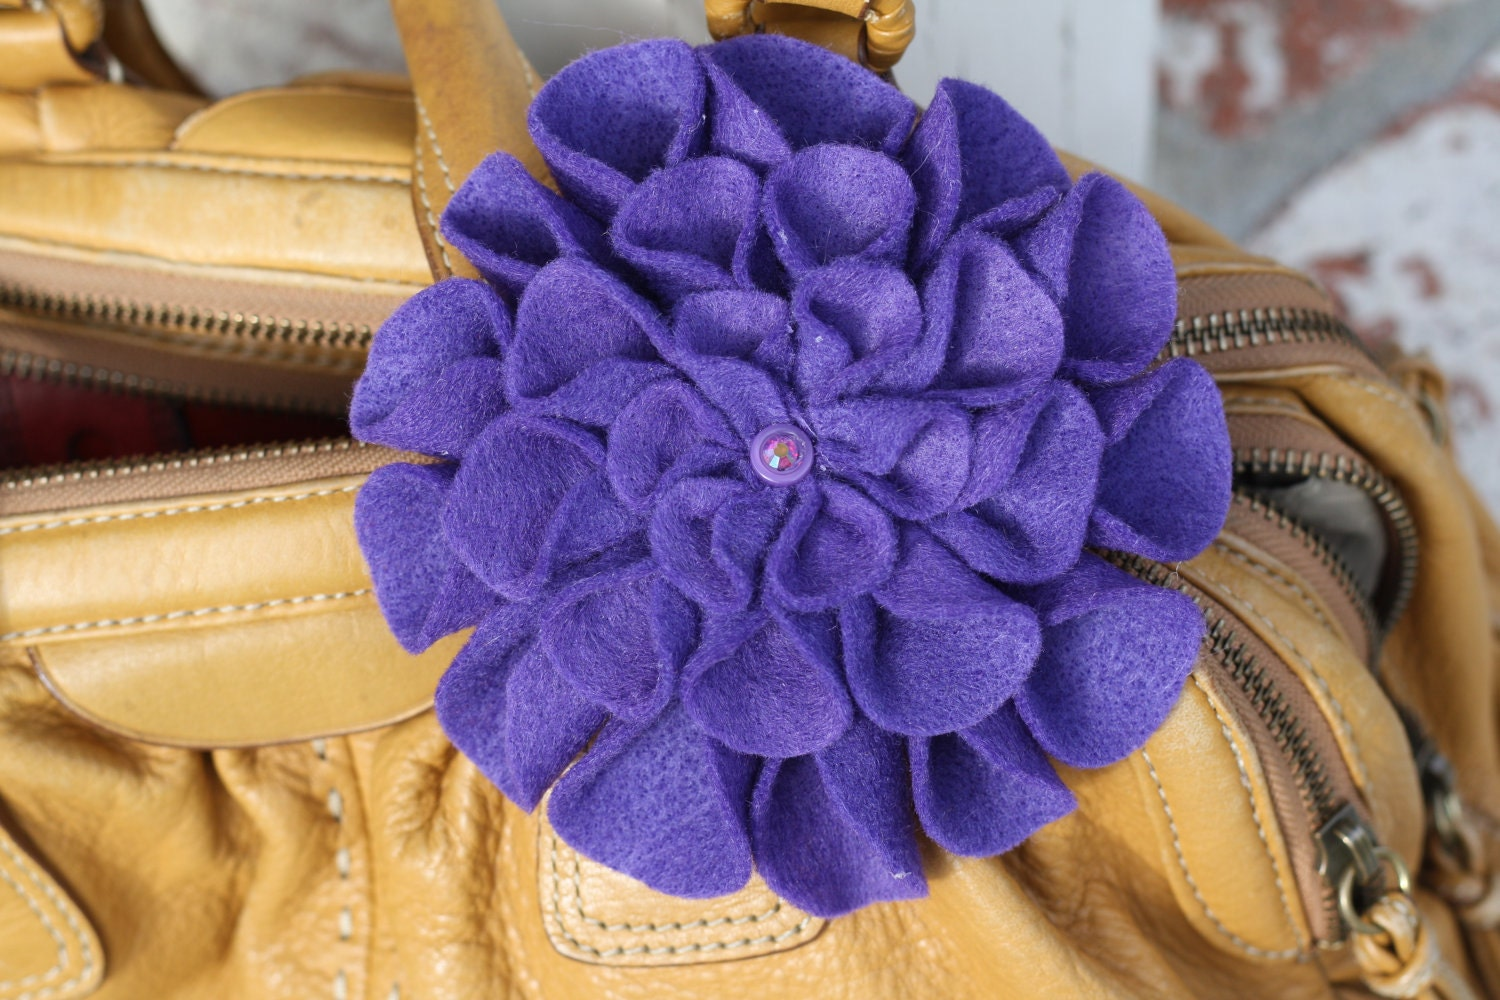 Lovely Purple Felt Fall Flower Pin Accessory